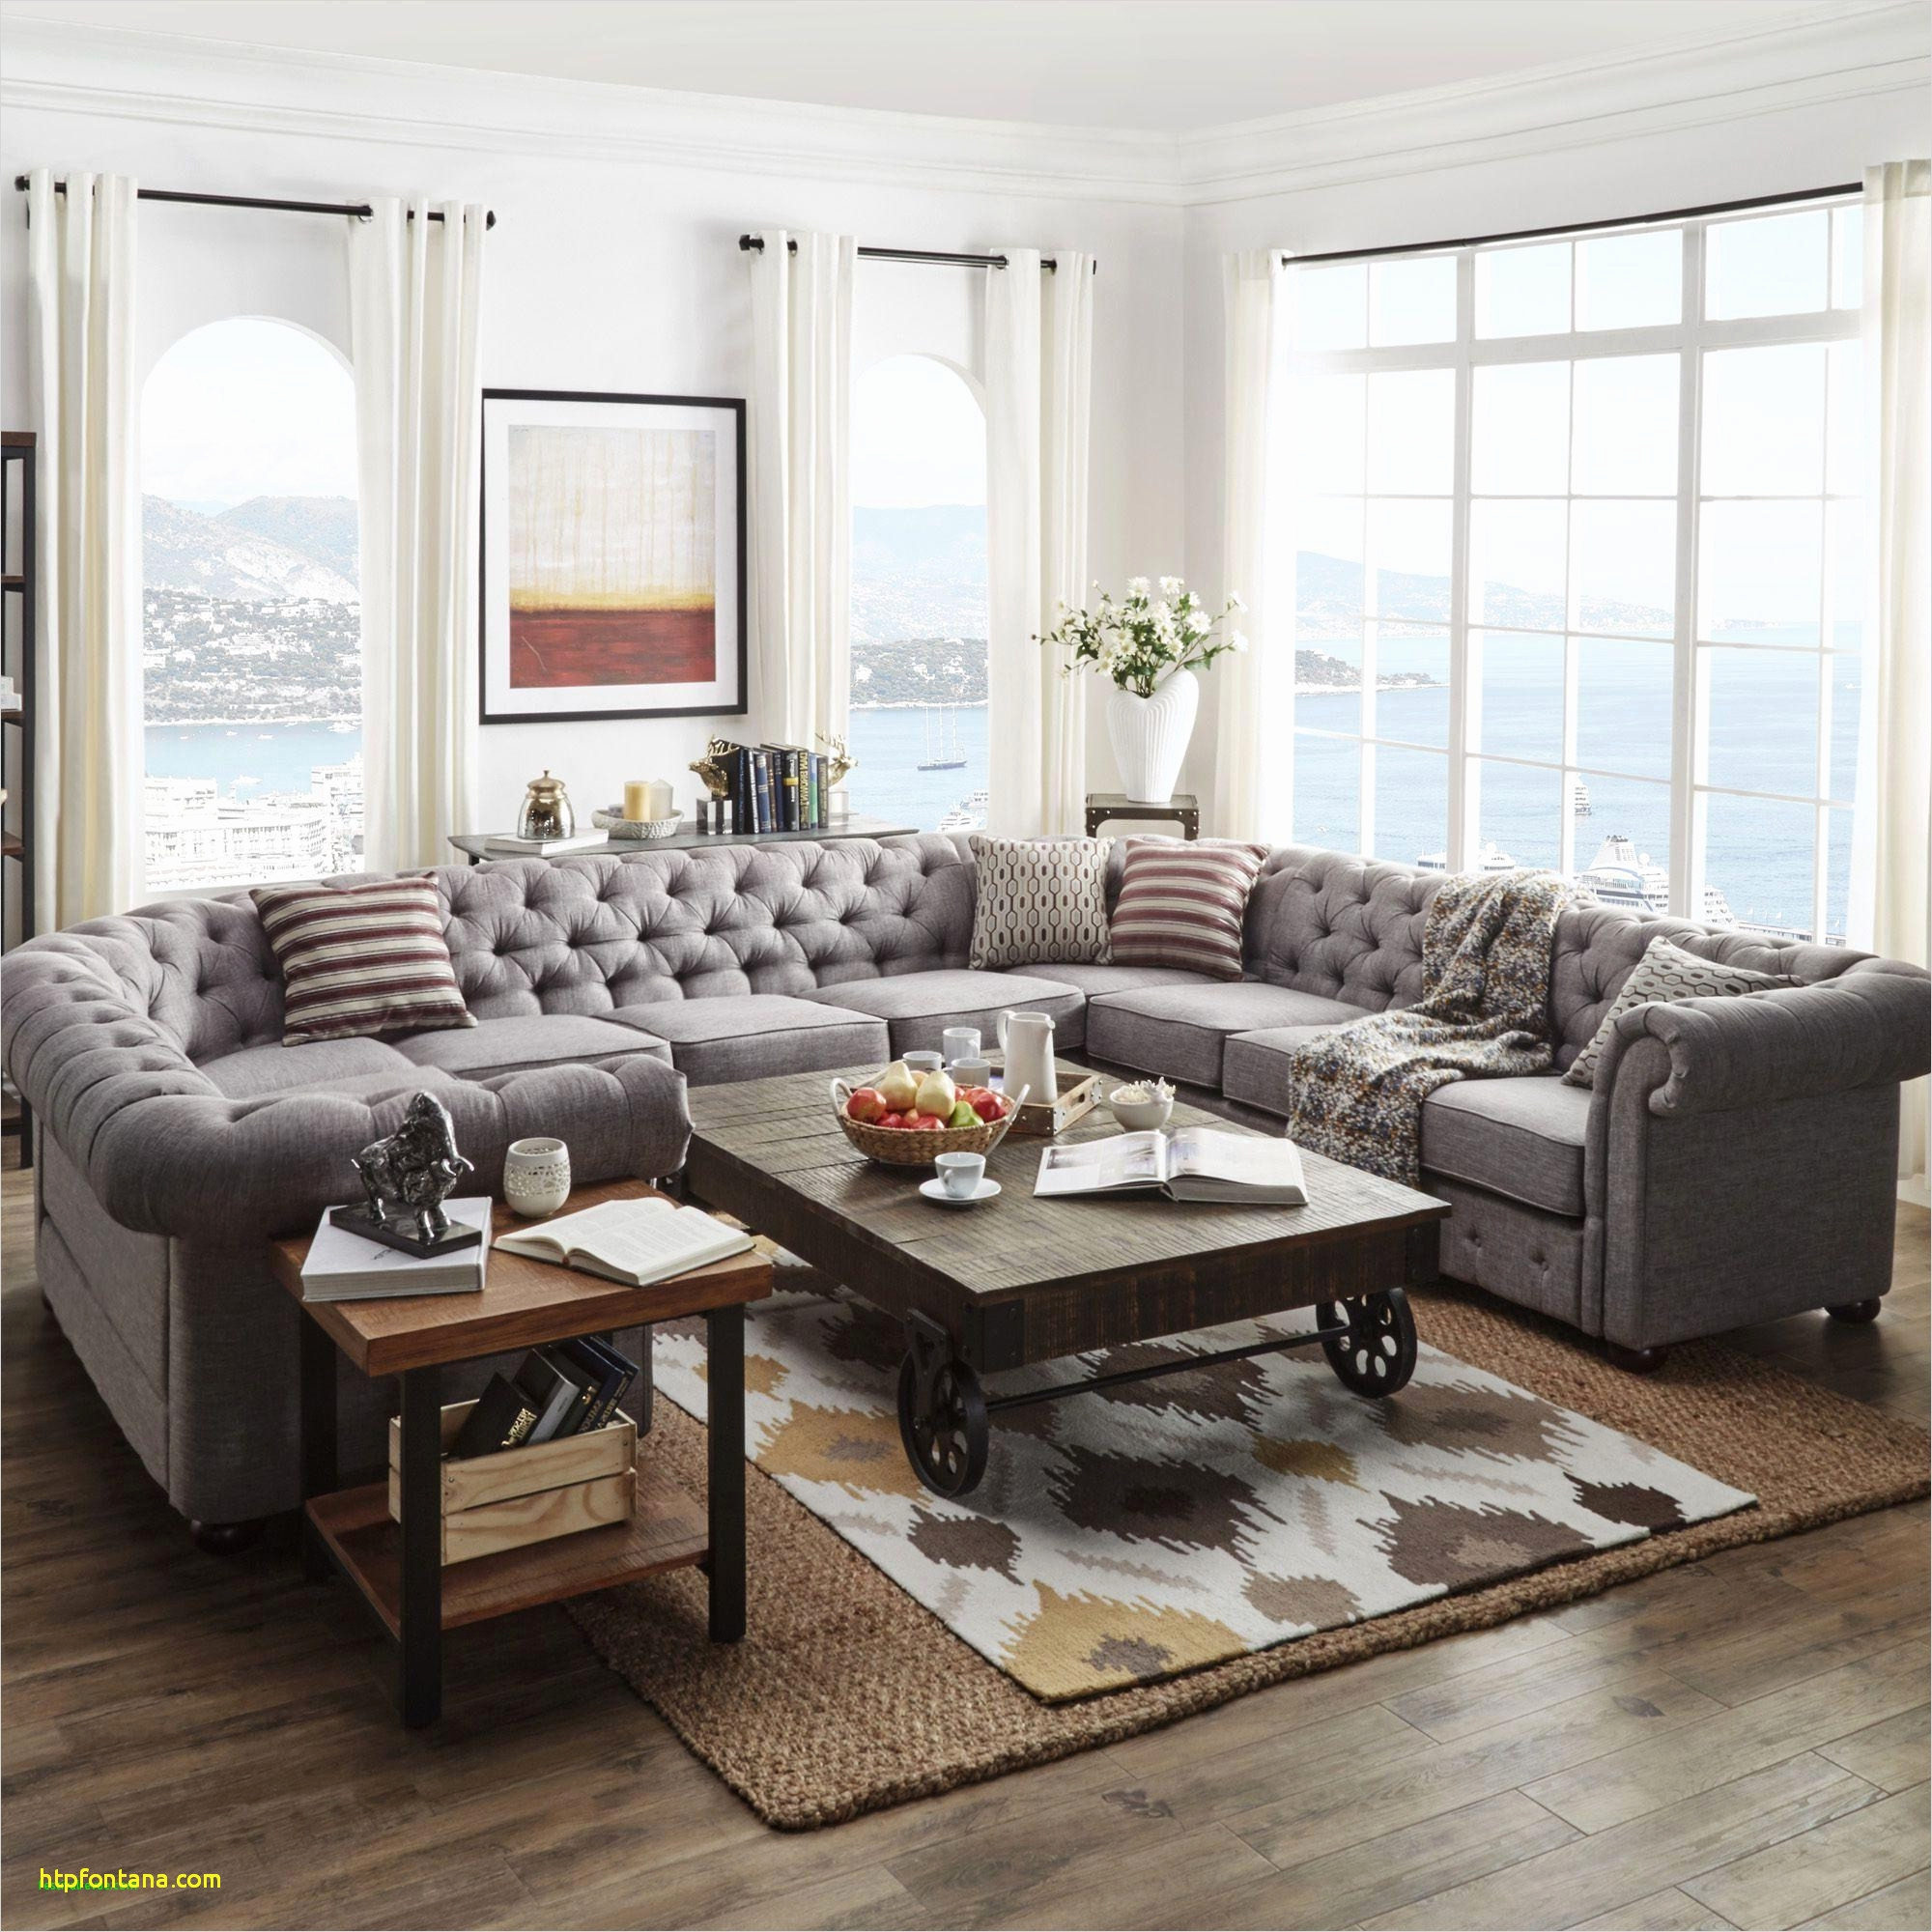 Sectional Living Room Sets Furniture Stores Near Me That